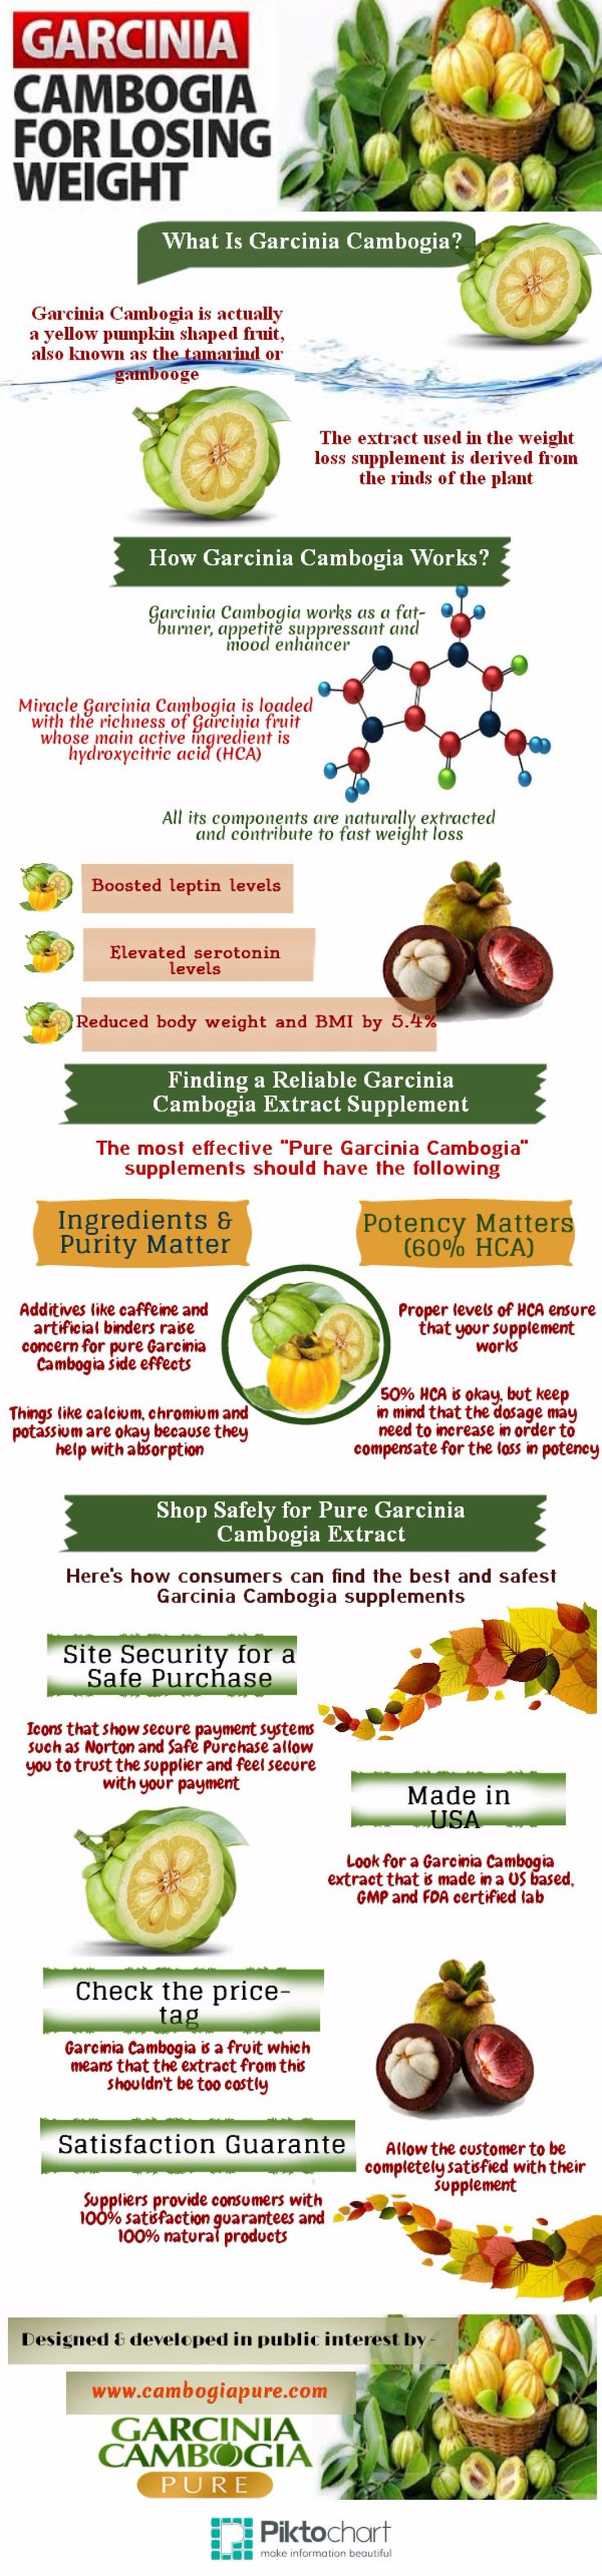 What are the health benefits of Garcinia Cambogia? #garciniacambogia #fatburner #weightloss